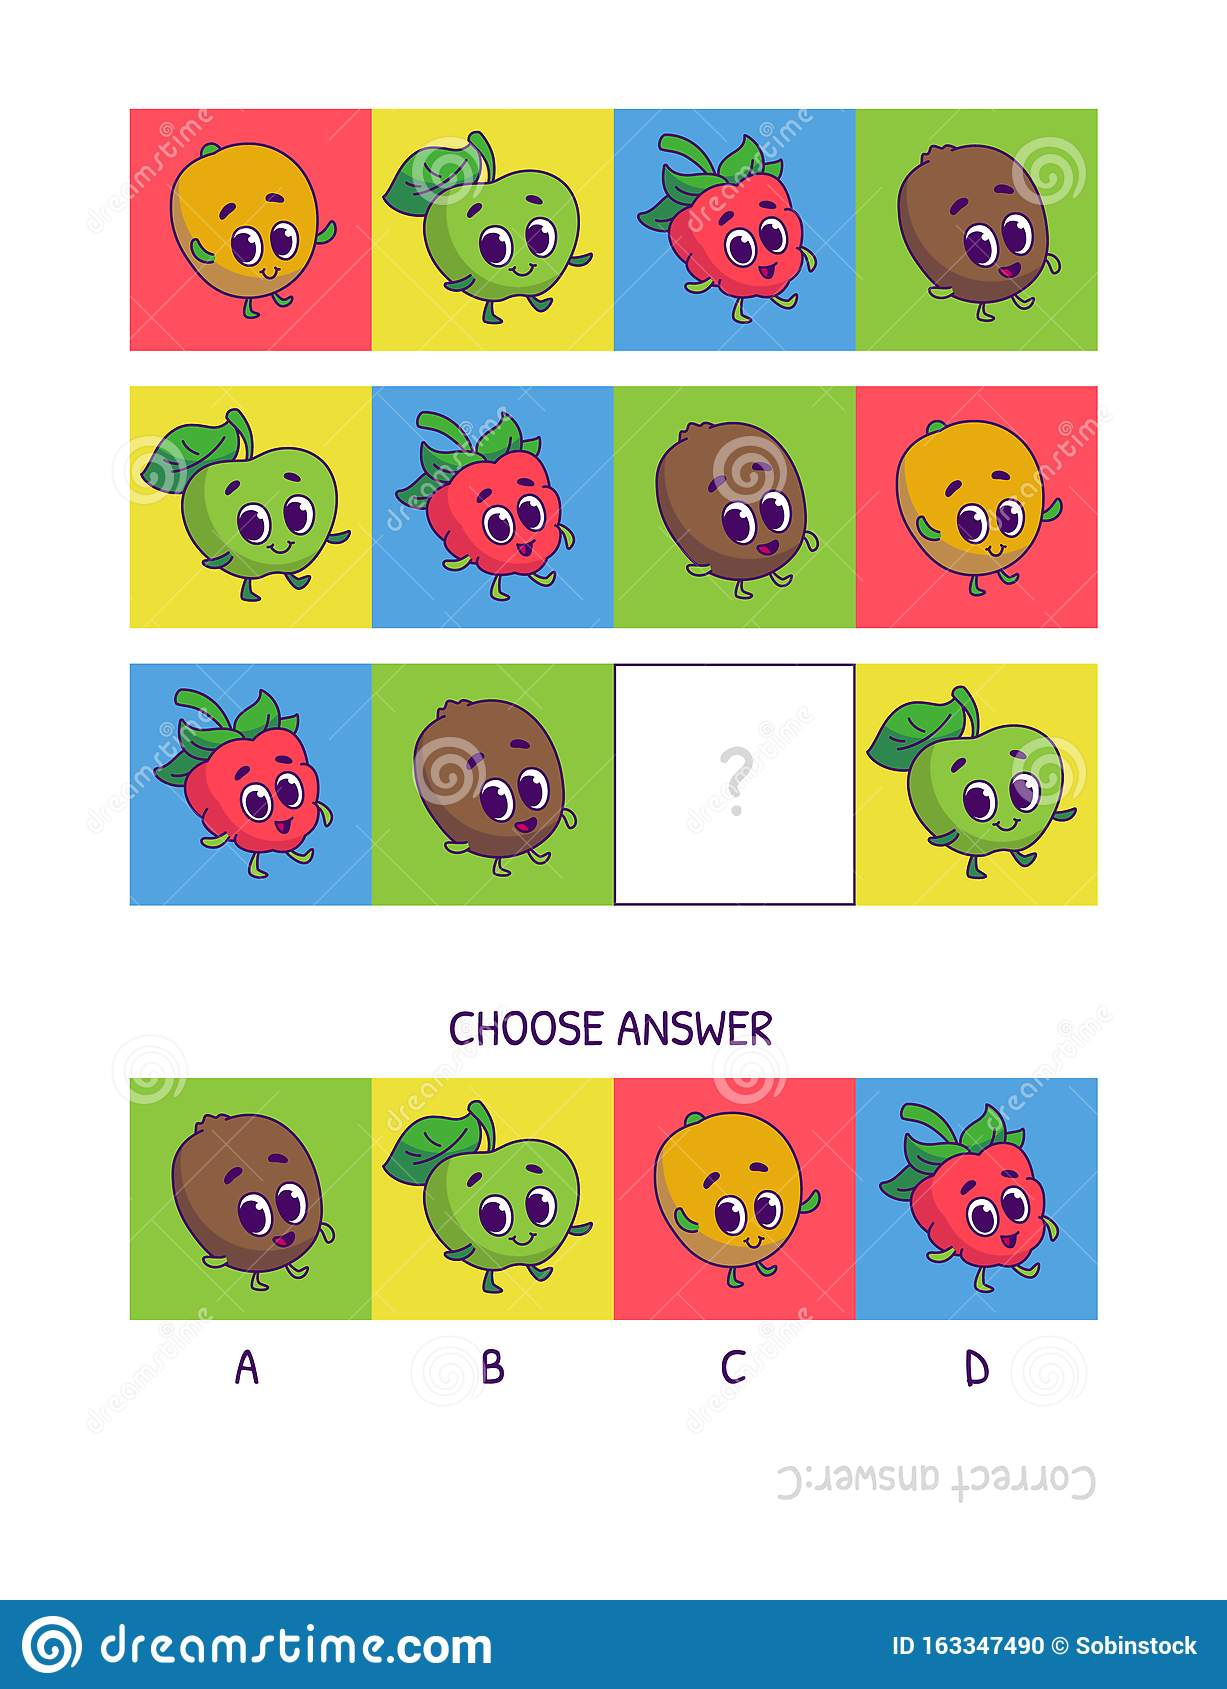 Cute Mango Green Apple Raspberry Kiwi Logic Game For